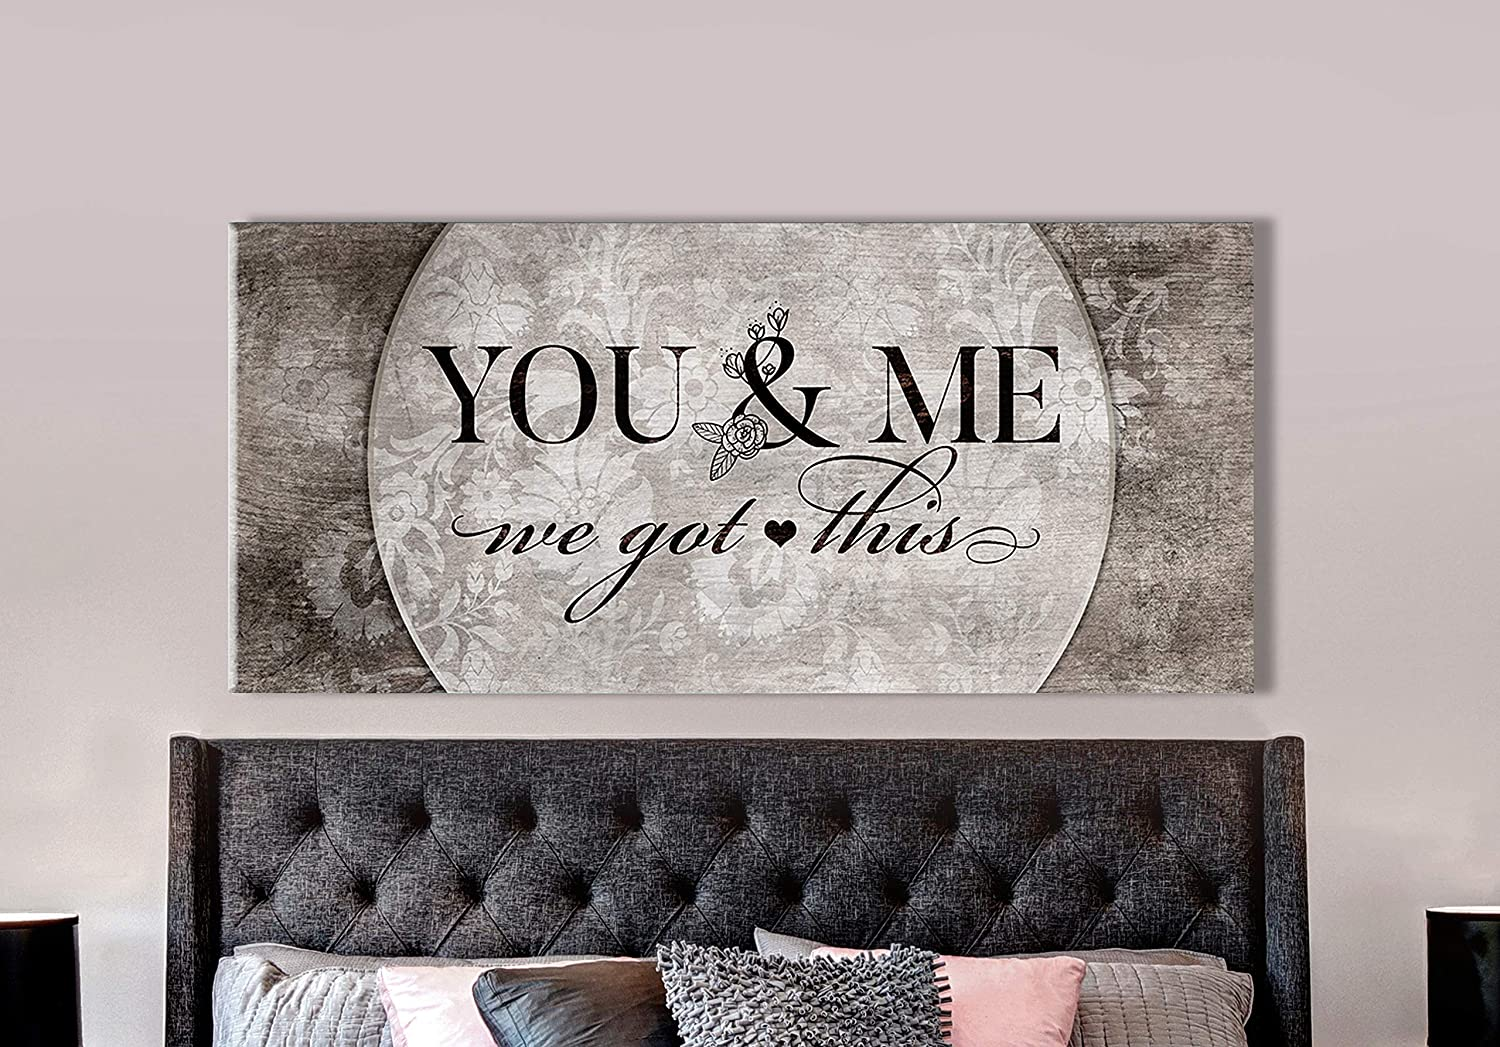 Above Bed Lovers Art   You and me we got This V5   Wood Framed Canvas   Rustic Bedroom Decor Bedroom Pictures for Wall Ready to Hang Wall Decor for Bedroom Couples (Brown, 42x19)